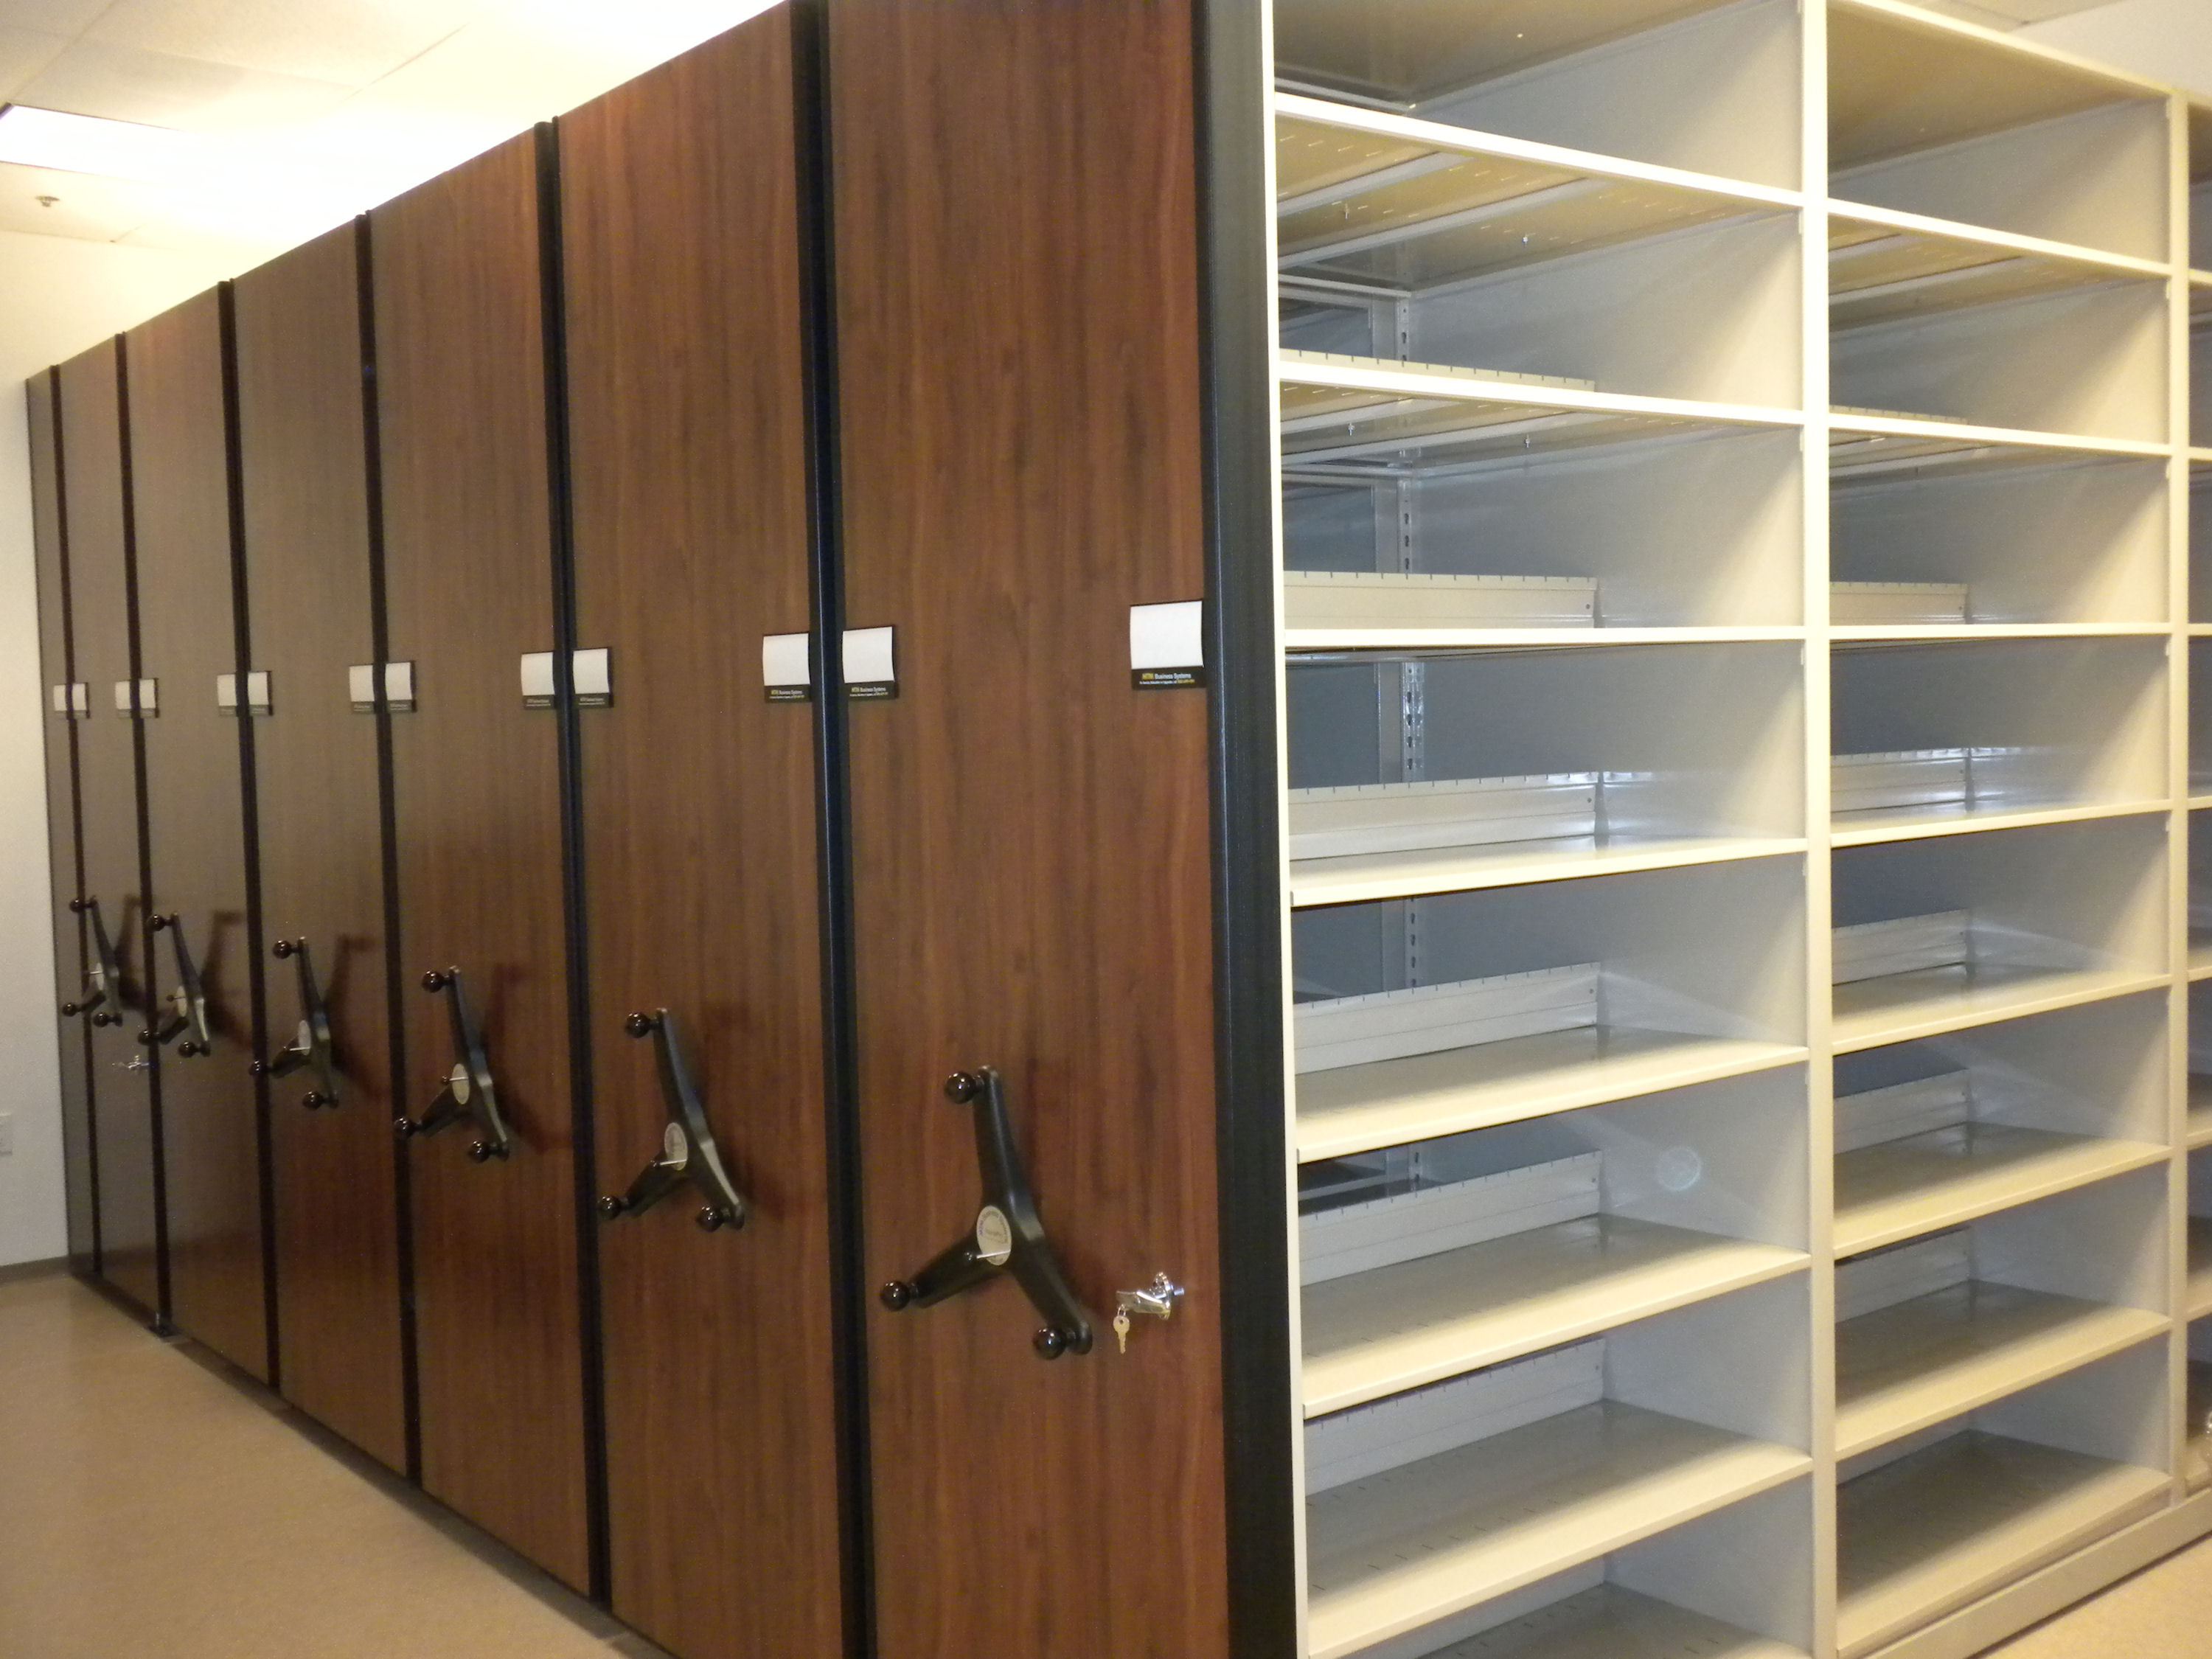 Shared Central File Room High Density Shelving with multiple system locks - Copy